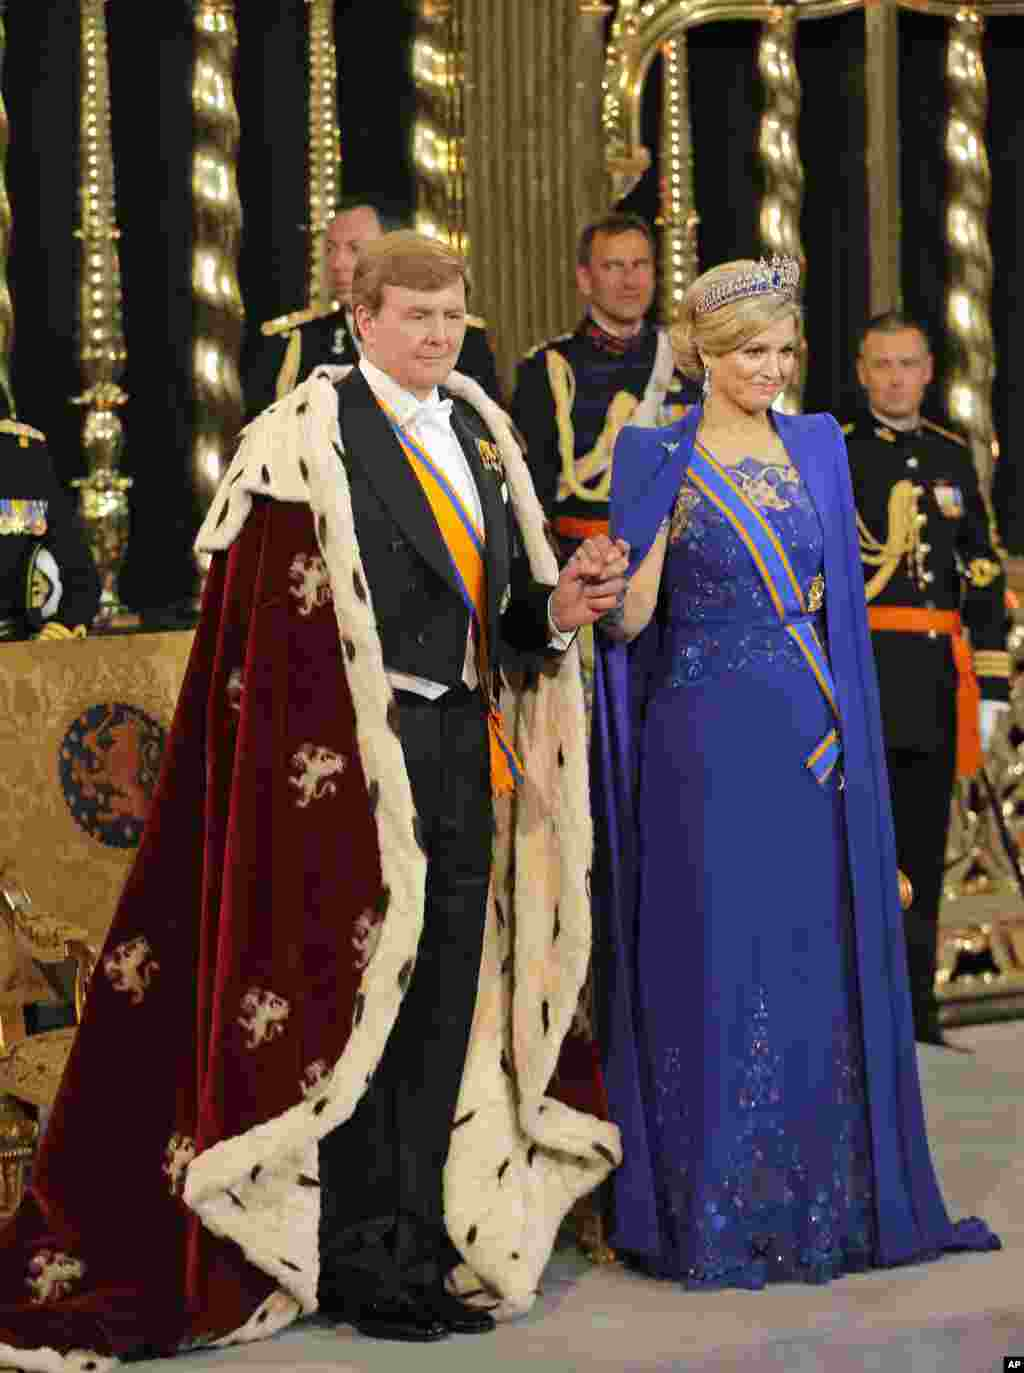 Dutch King Willem-Alexander and Queen Maxima stand inside the Nieuwe Kerk or New Church in Amsterdam, at his investiture, April 30, 2013.